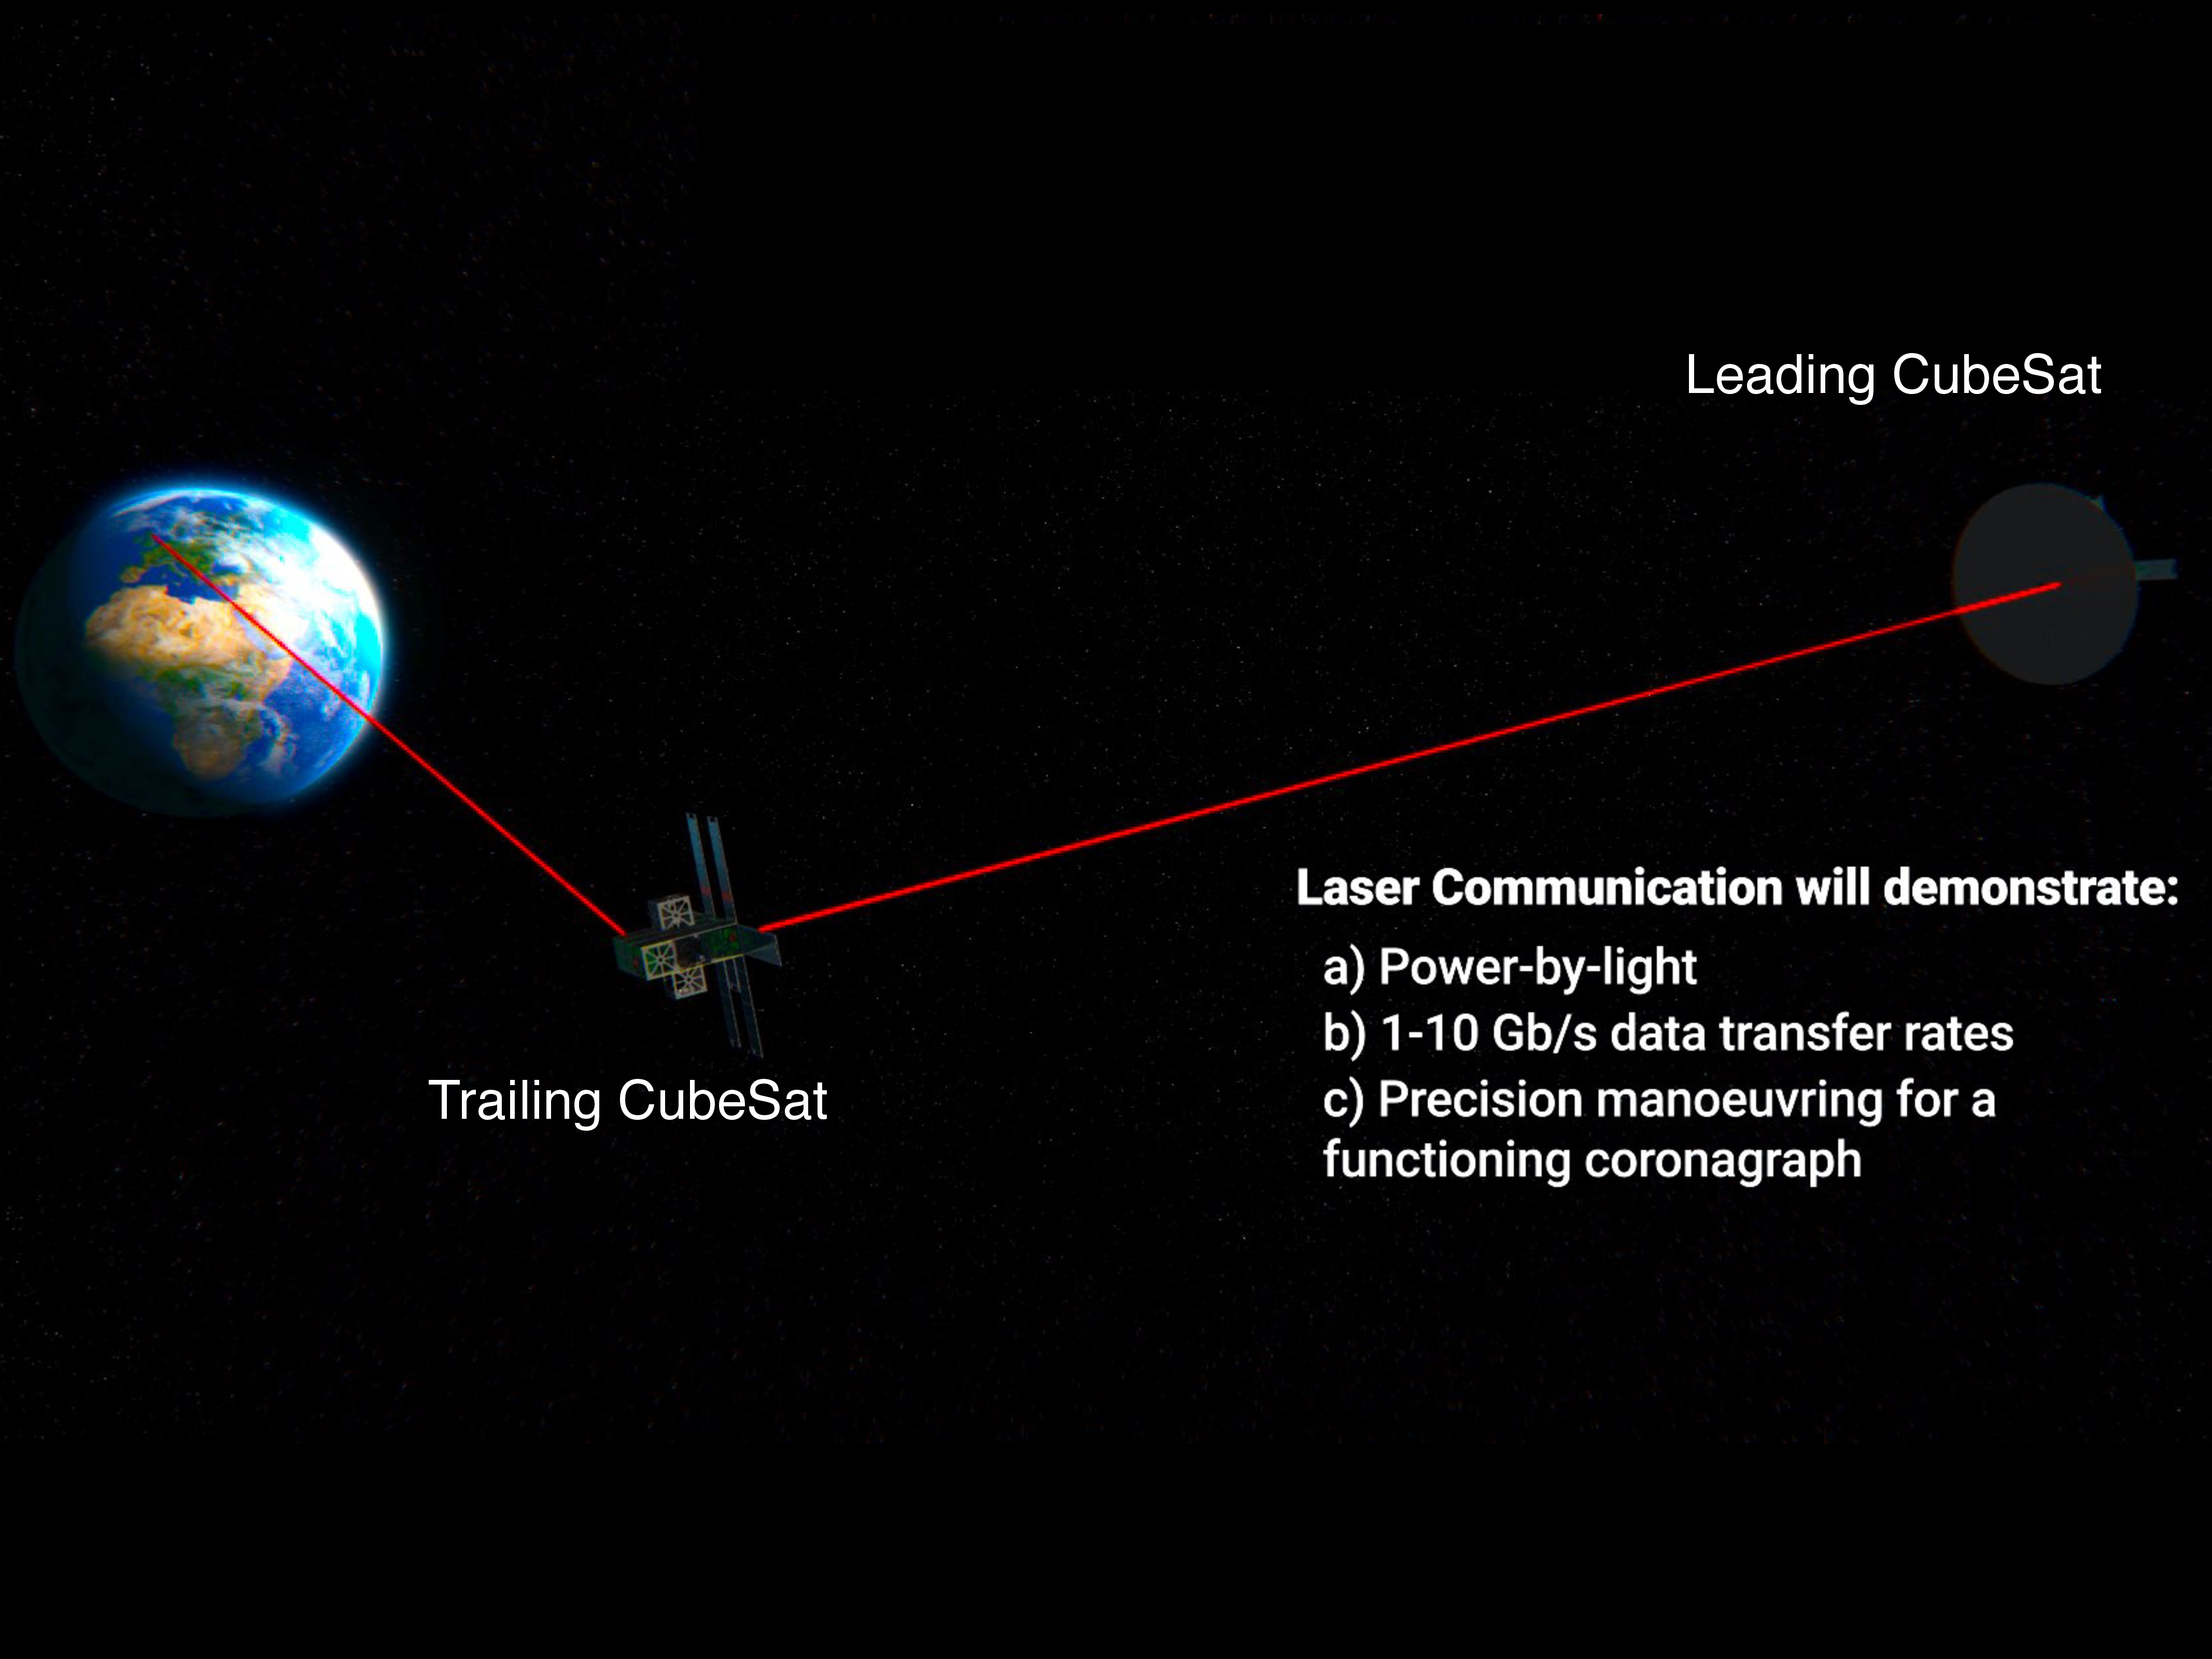 Laser optical communications (so-called Li-Fi as opposed to Wi-Fi) has the potential to revolutionise satellite-to-satellite and satellite-to-ground data transfer. A key aspect of the SULIS mission will be the technology demonstration of Li-Fi in space Credit: Dr Eamon Scullion Northumbria University Newcastle upon Tyne